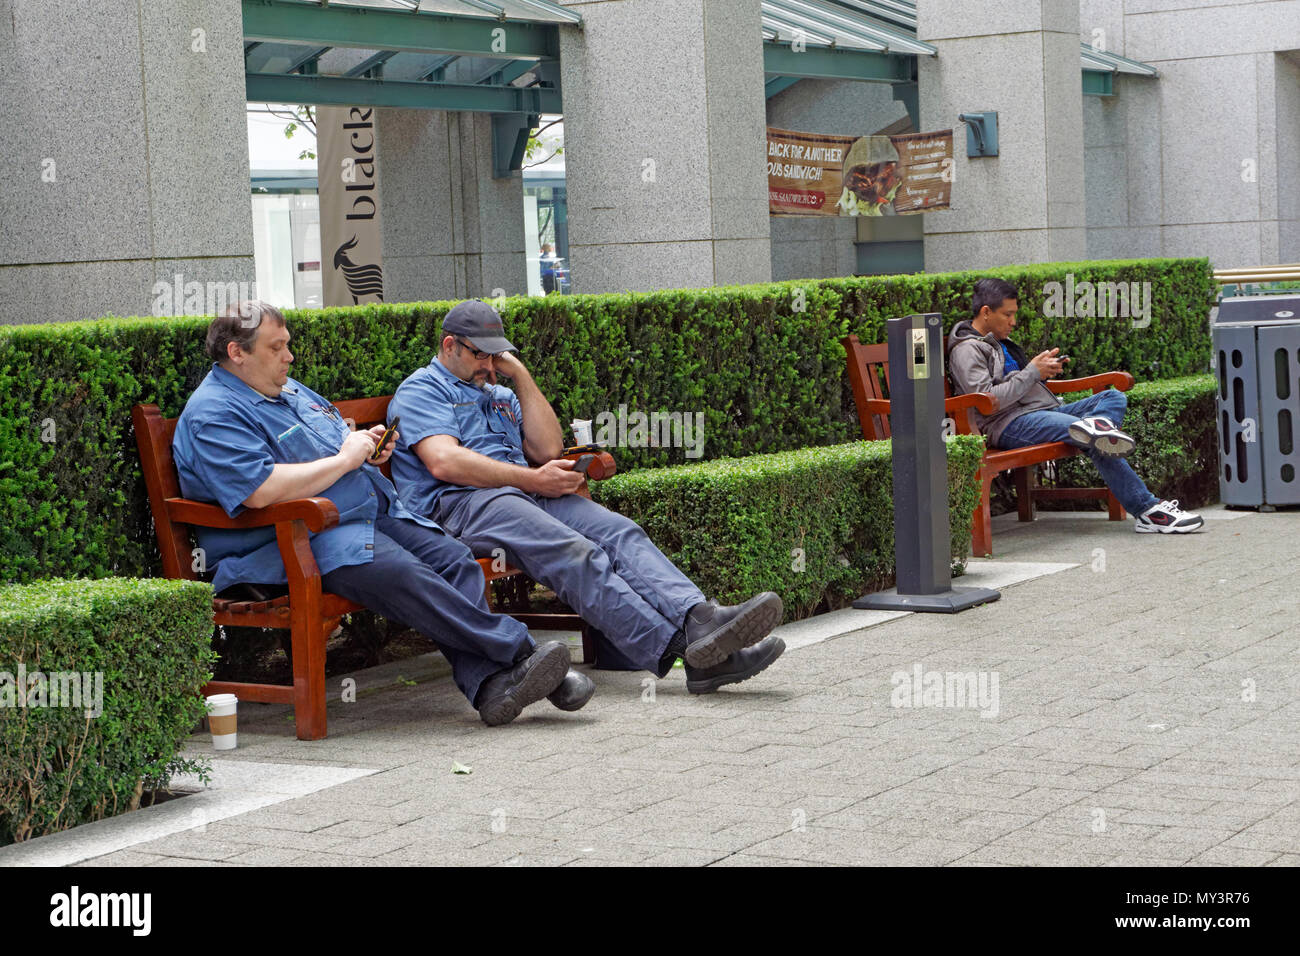 Men sitting on benches using cell phones in Vancouver, BC, Canada - Stock Image